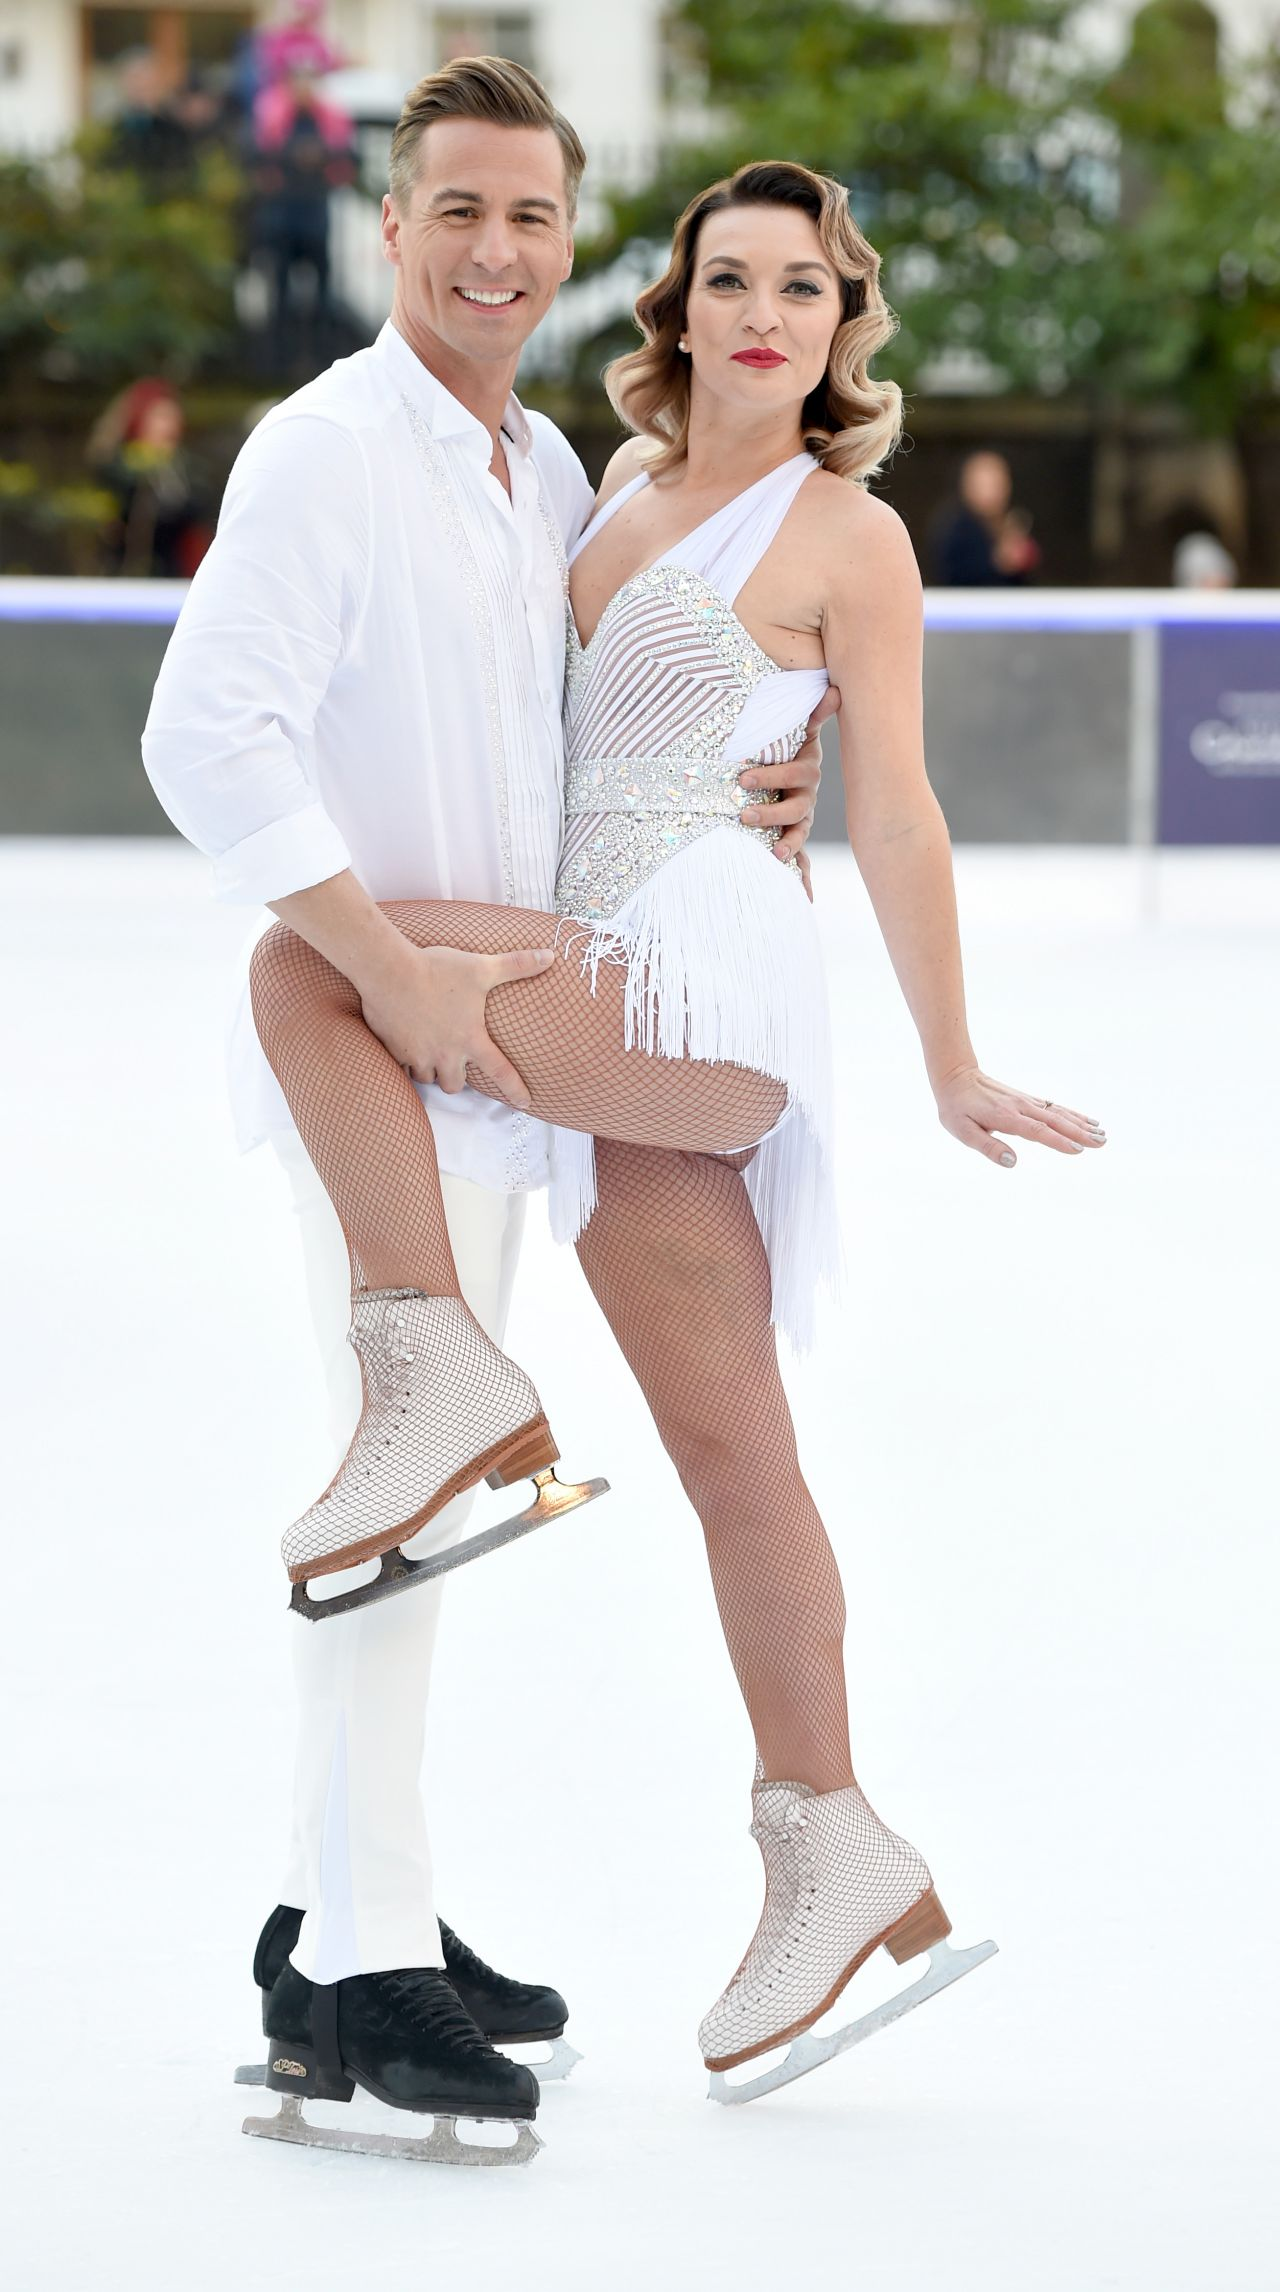 Candice Brown Dancing On Ice Photocall In London 12 19 2017 Celebmafia